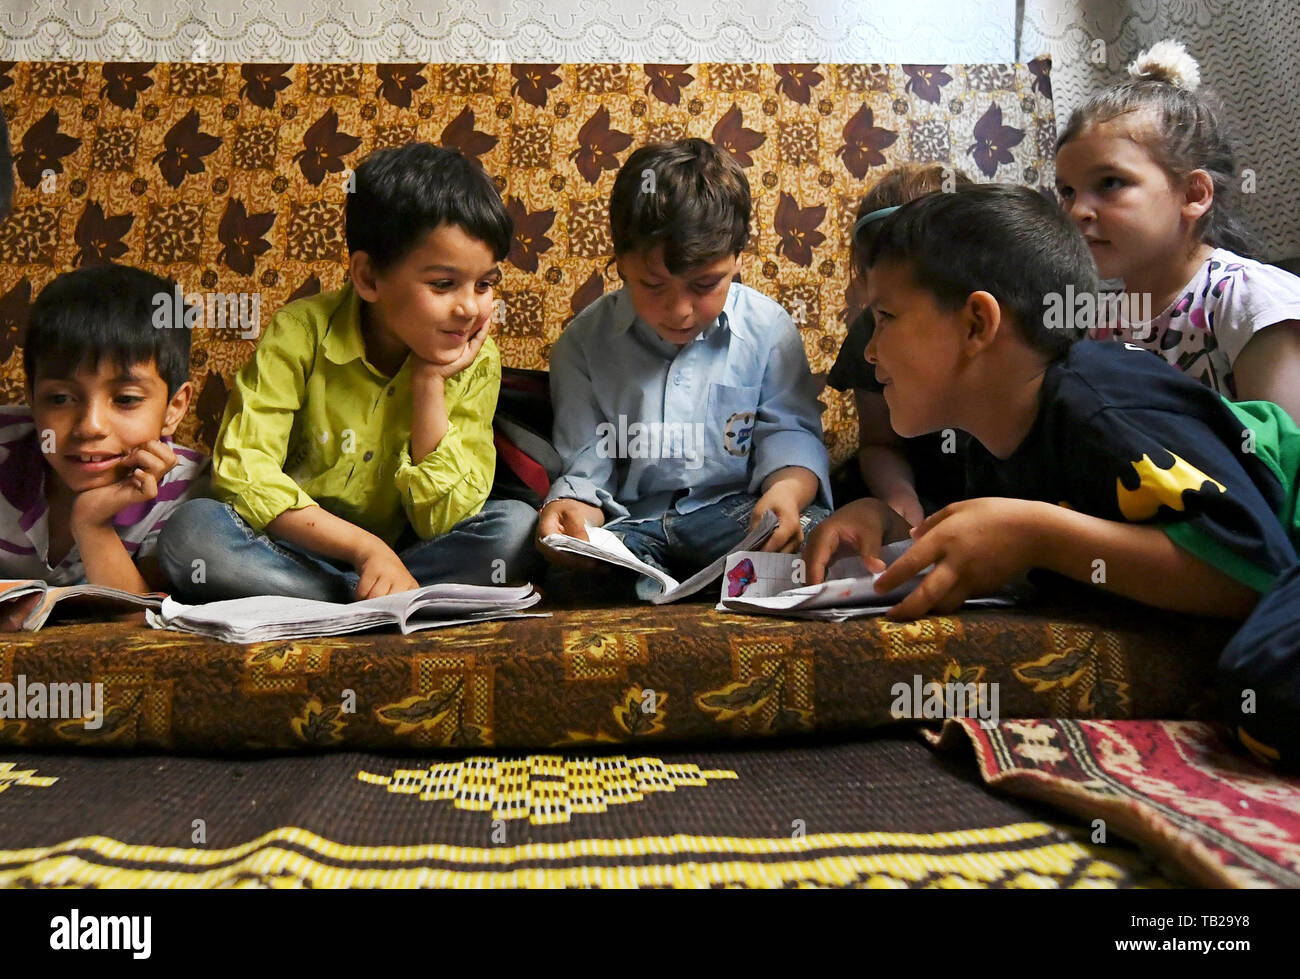 """Beijing, Syria, China. 28th May, 2019. Ibrahim Mossa (2nd L) smiles while sitting with his siblings and cousins in an unfinished house in the Jaramana suburb of Damascus, Syria, on May 28, 2019. Ibrahim was born in 2011 when the Syrian crisis began. In Syria, those who were born during the war were regarded as """"Generation of War."""" They were unable to have a normal or healthy childhood like many of their parents did. Credit: Ammar Safarjalani/Xinhua/Alamy Live News Stock Photo"""